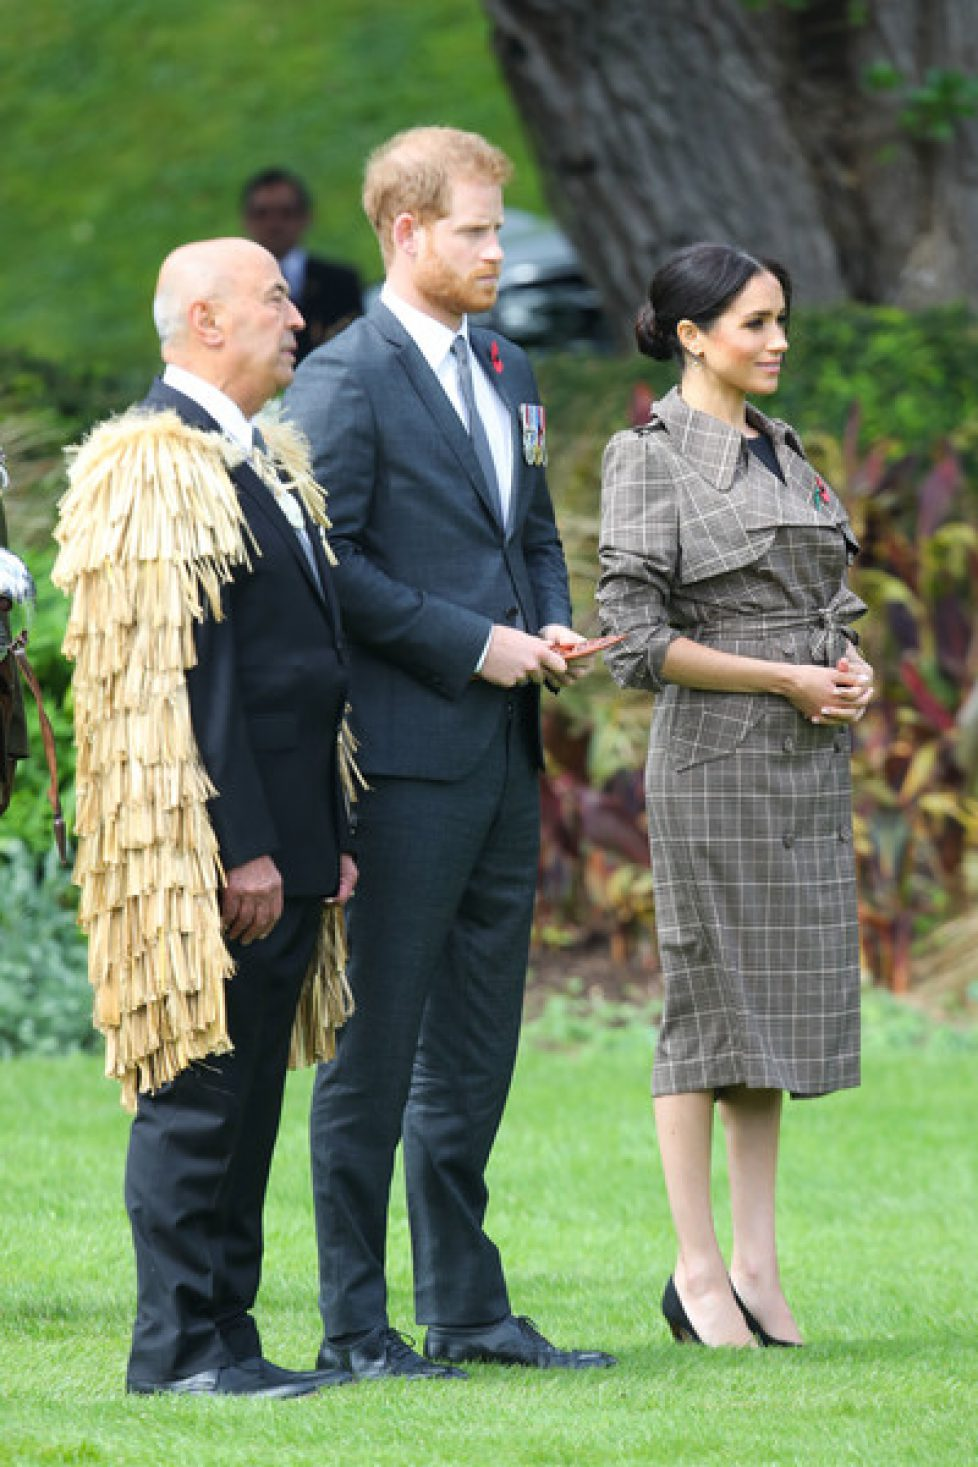 Duke+Duchess+Sussex+Visit+New+Zealand+Day+CFgWzTRZGPal